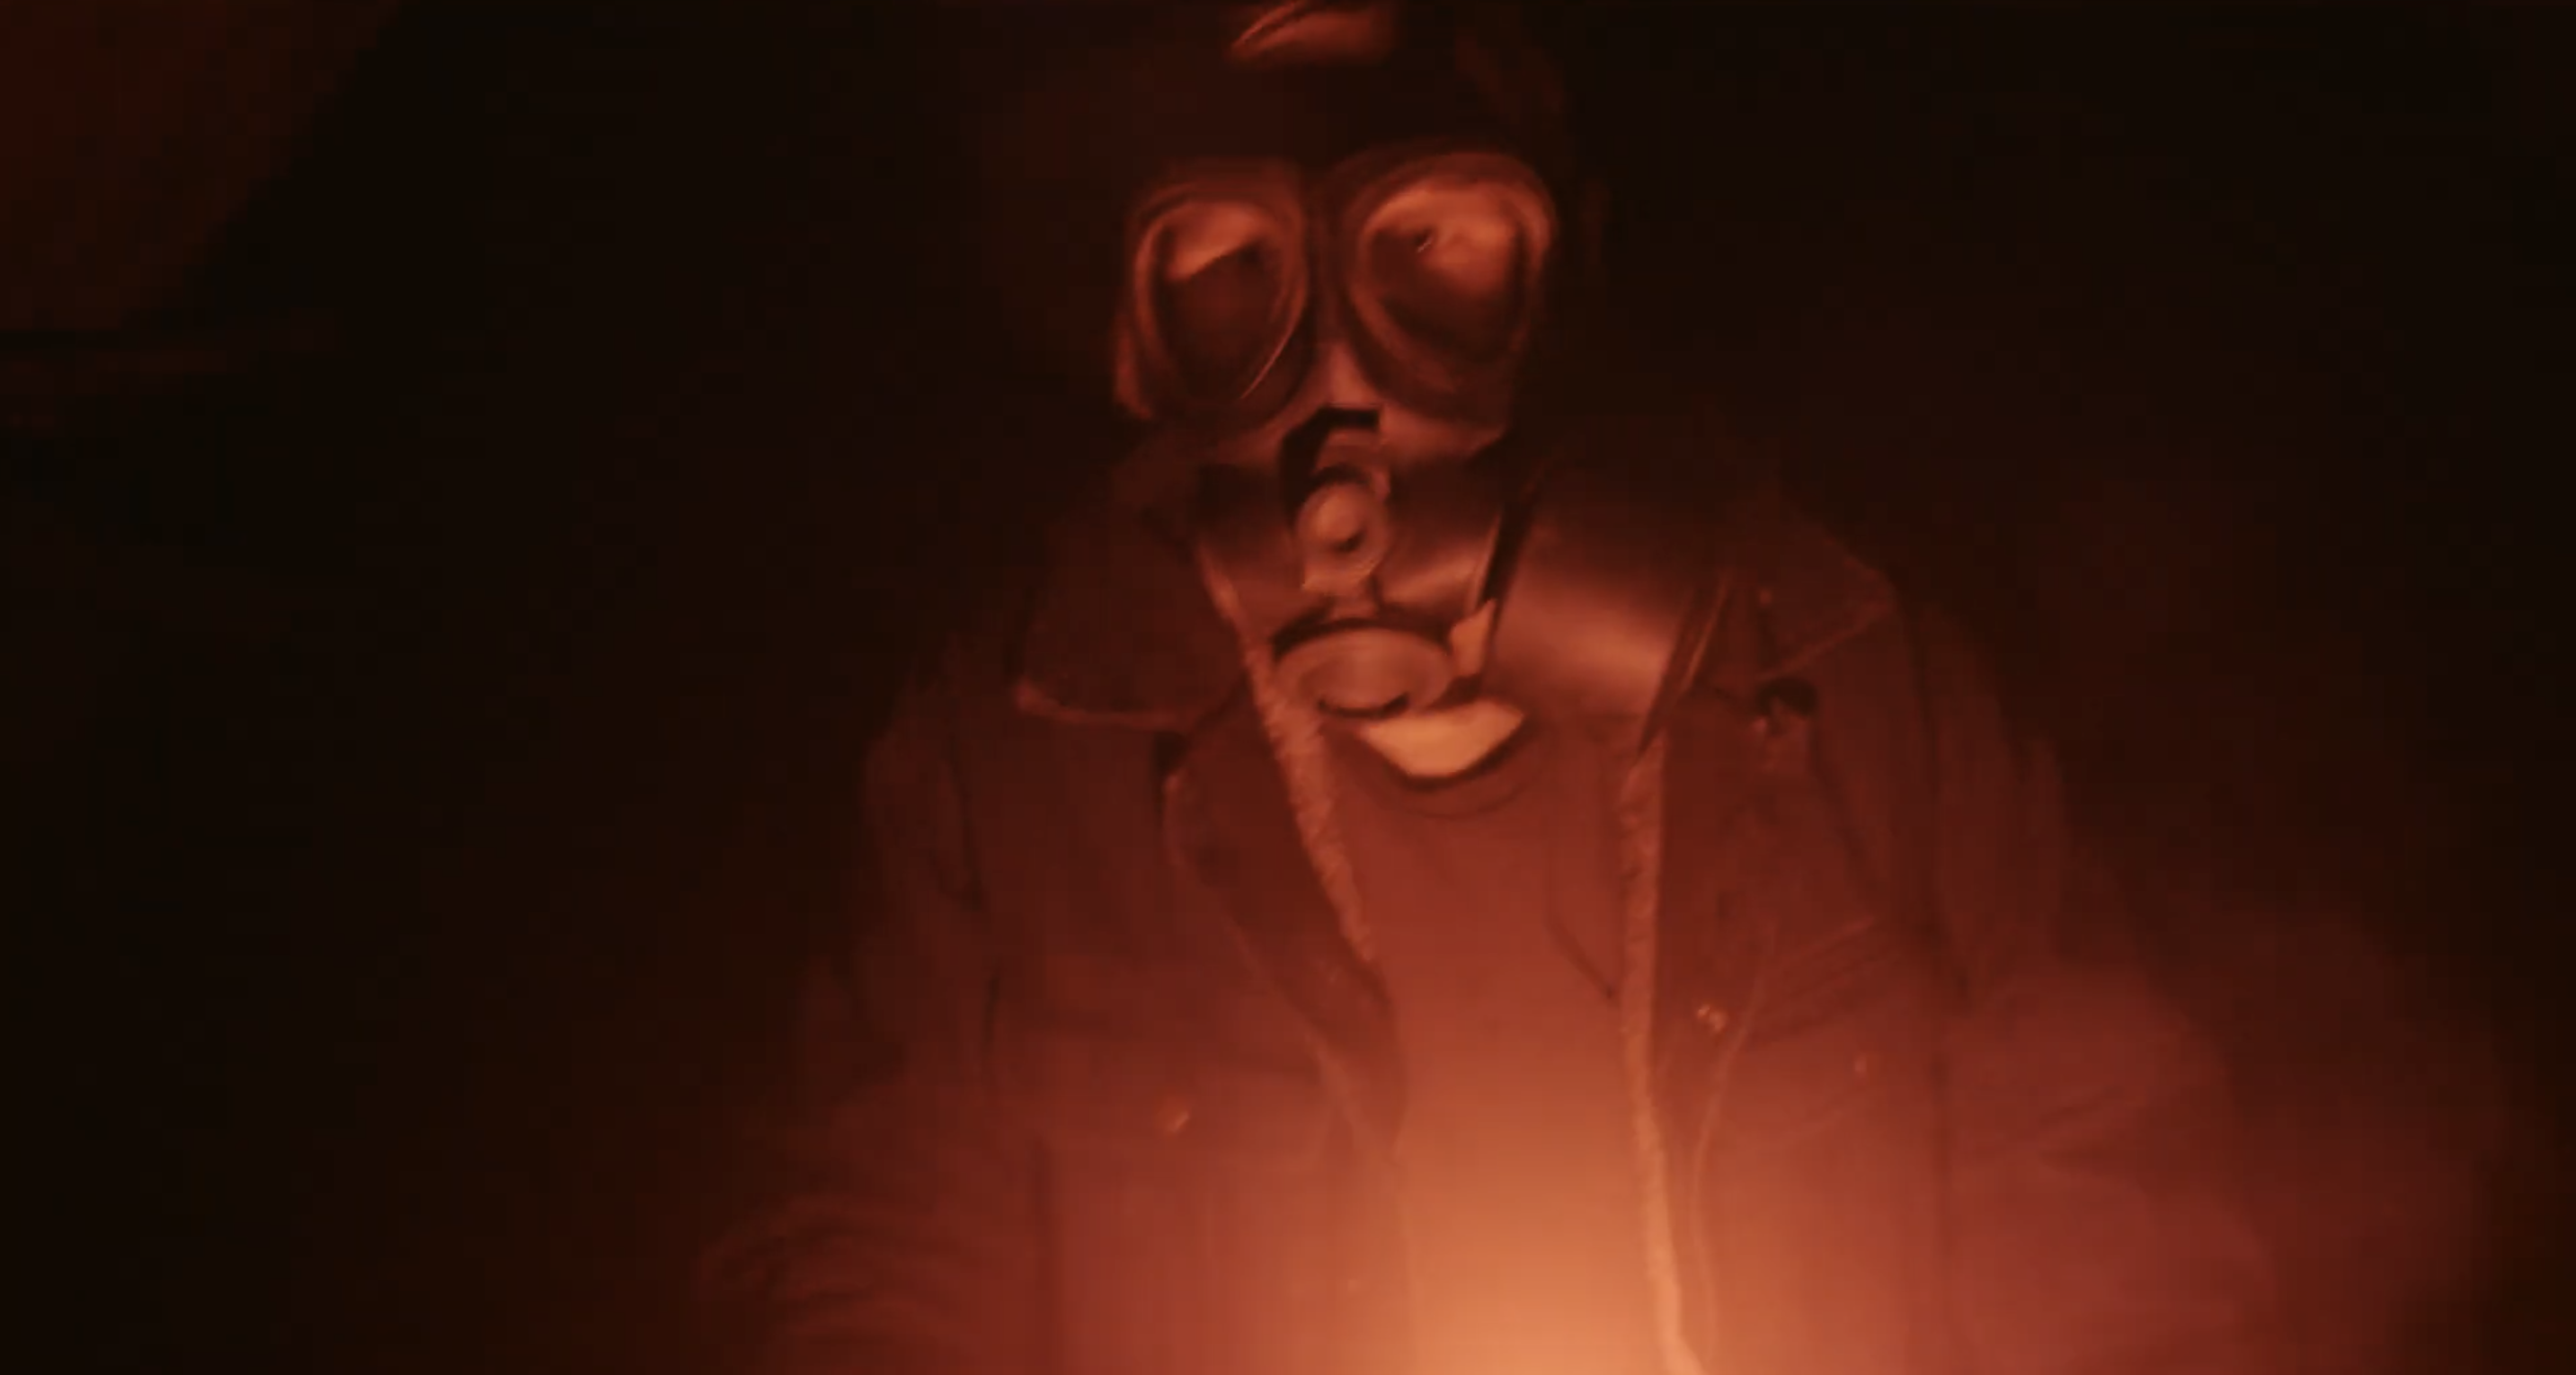 a figure wearing a gas mask, lit only by the red glow of a flare, in a darkened hallway